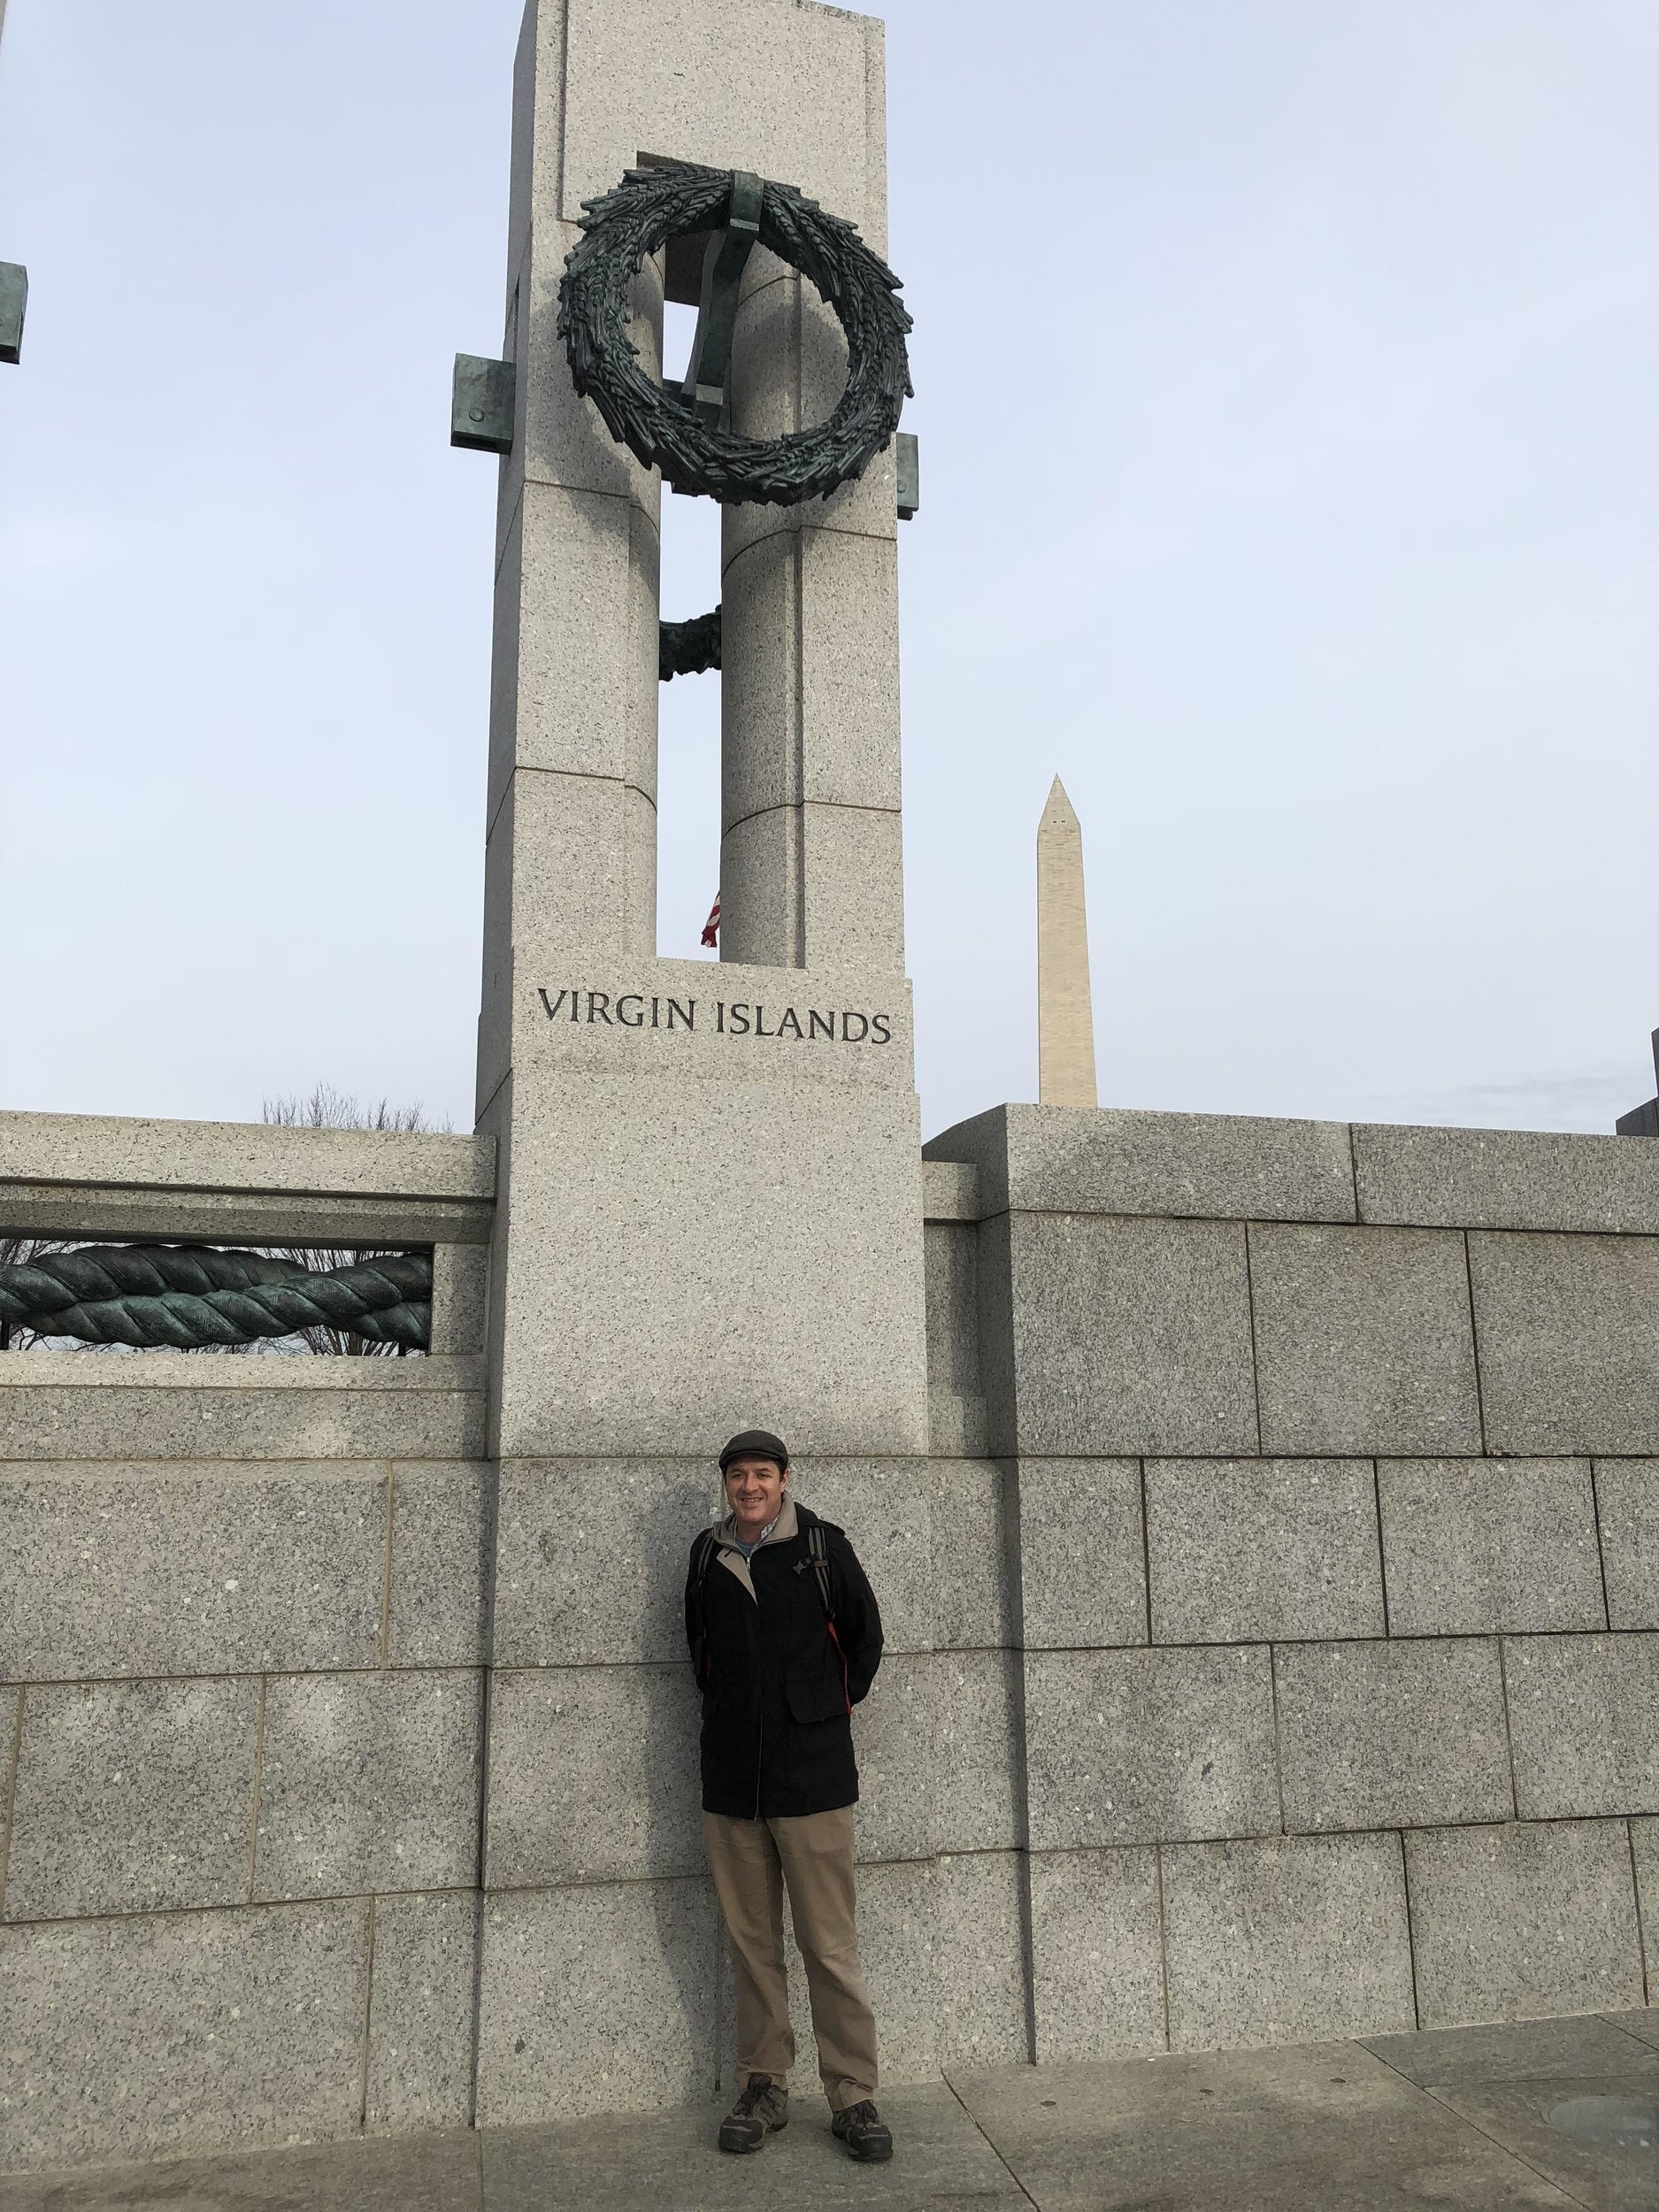 Dr. Smith seen here at the National World War II Memorial in Washington, D.C.